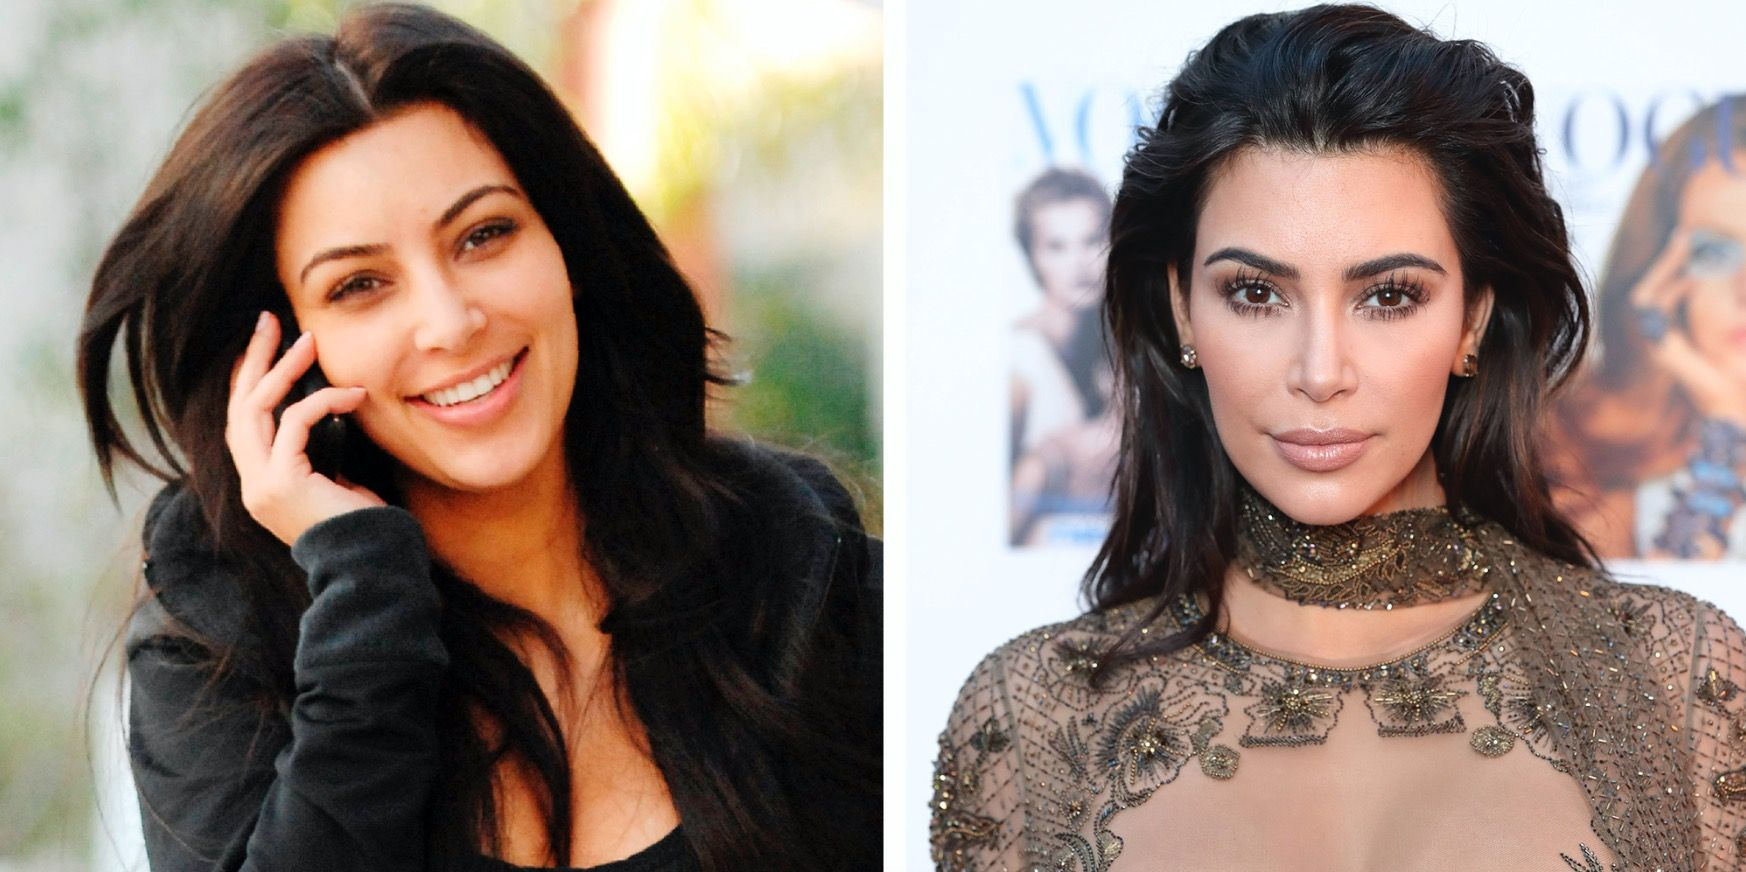 Kardashians without makeup: From Kylie Jenner to Kim K